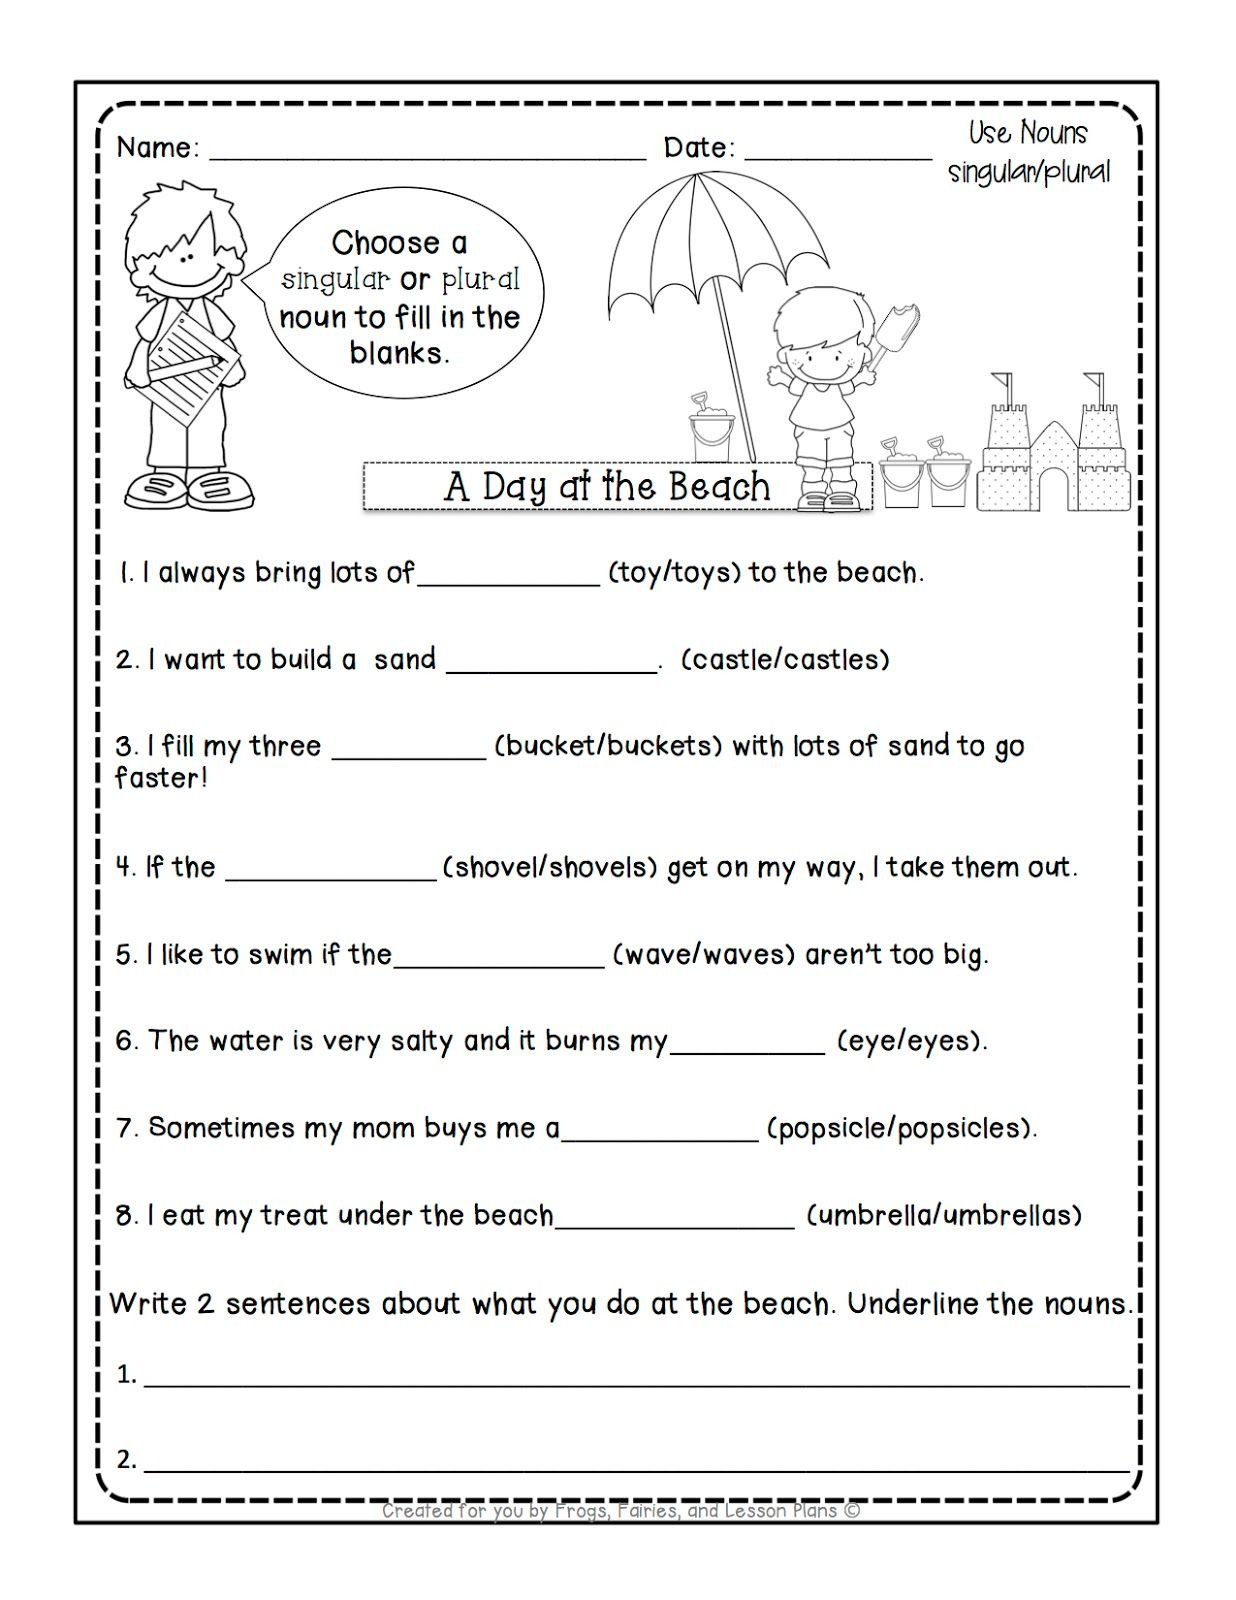 Possessive Noun Worksheet 2nd Grade 5 Noun Lessons You Need to Teach In 1st Grade Part 2